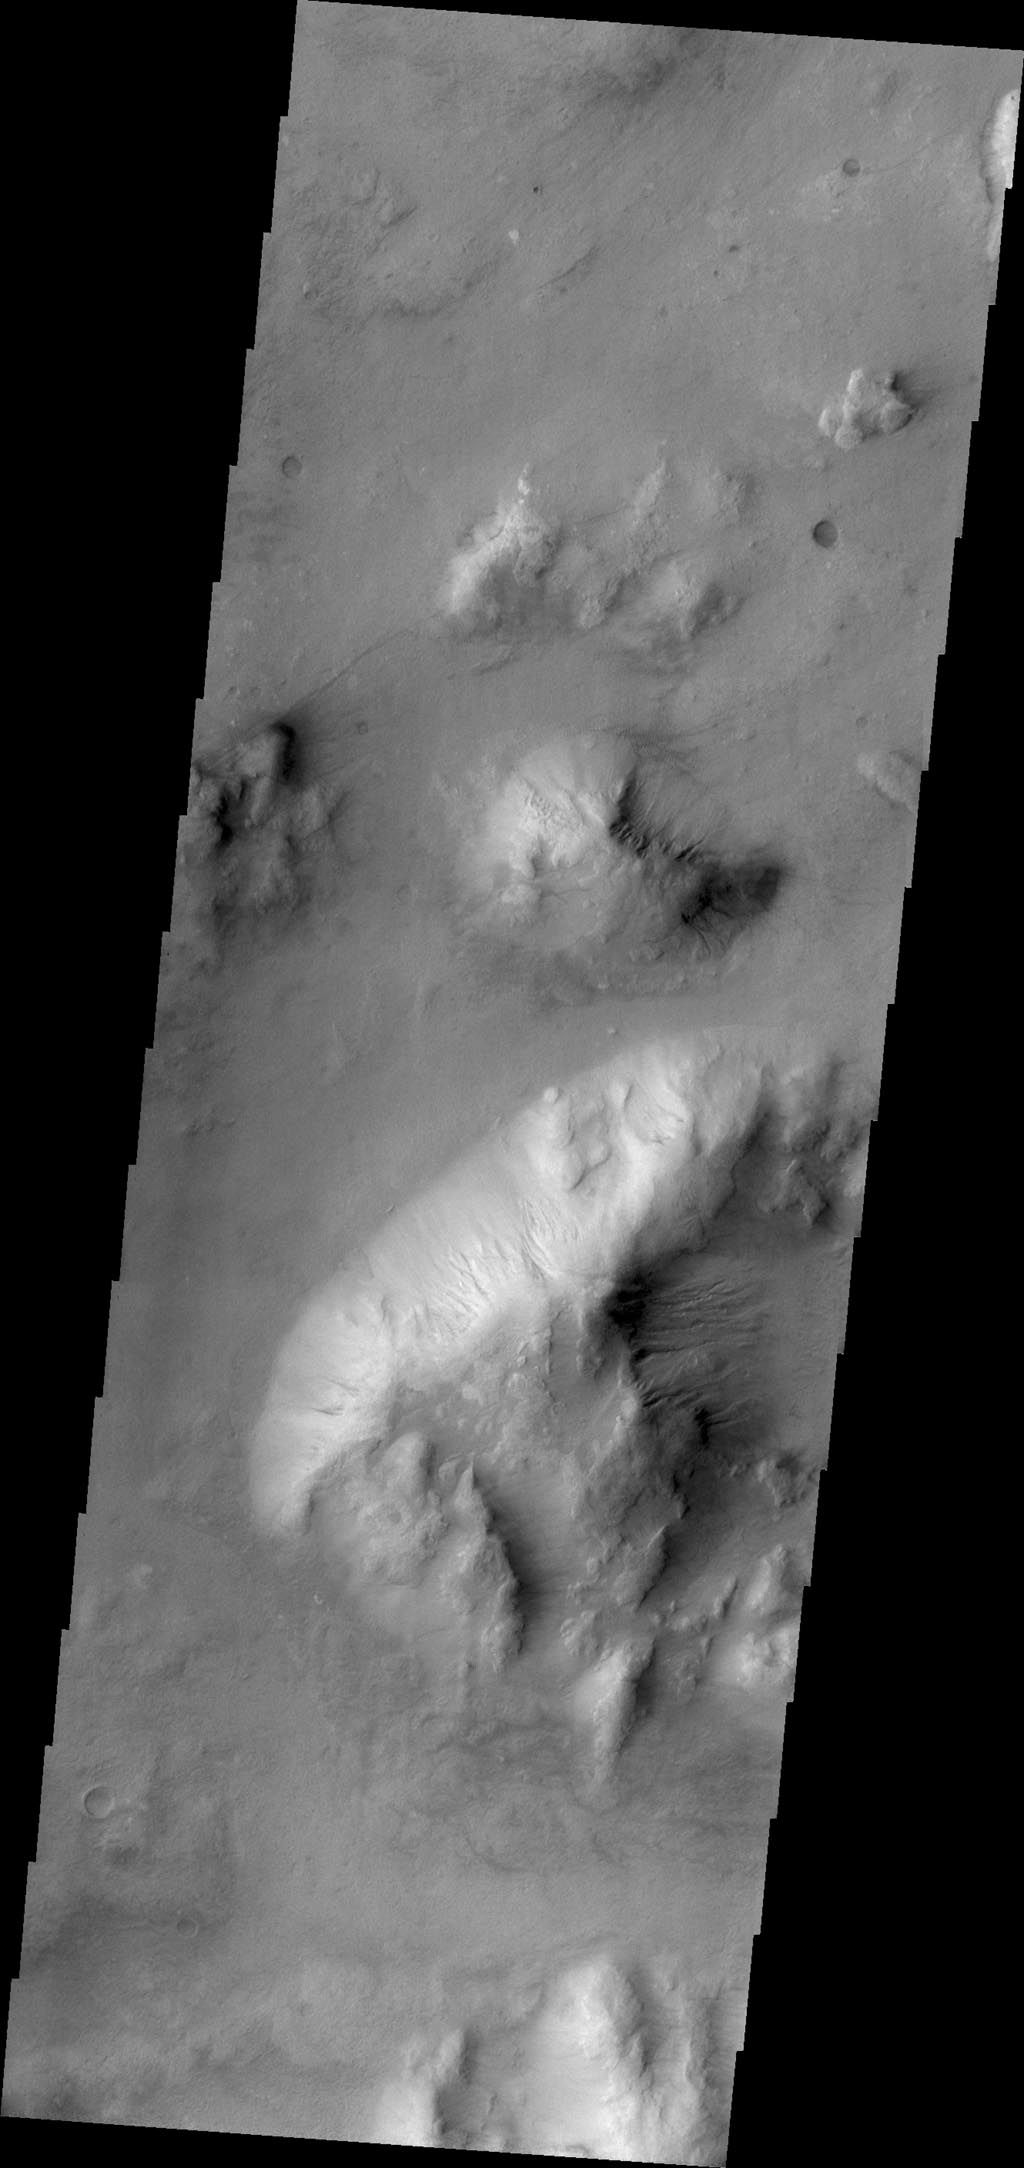 Craters are most often the site of gully formation on Mars. Mega-gullies are also found on the southwestern parts of Vallis Marineris, and in this image from NASA's 2001 Mars Odyssey spacecraft, on hills east of Argyre Planitia.